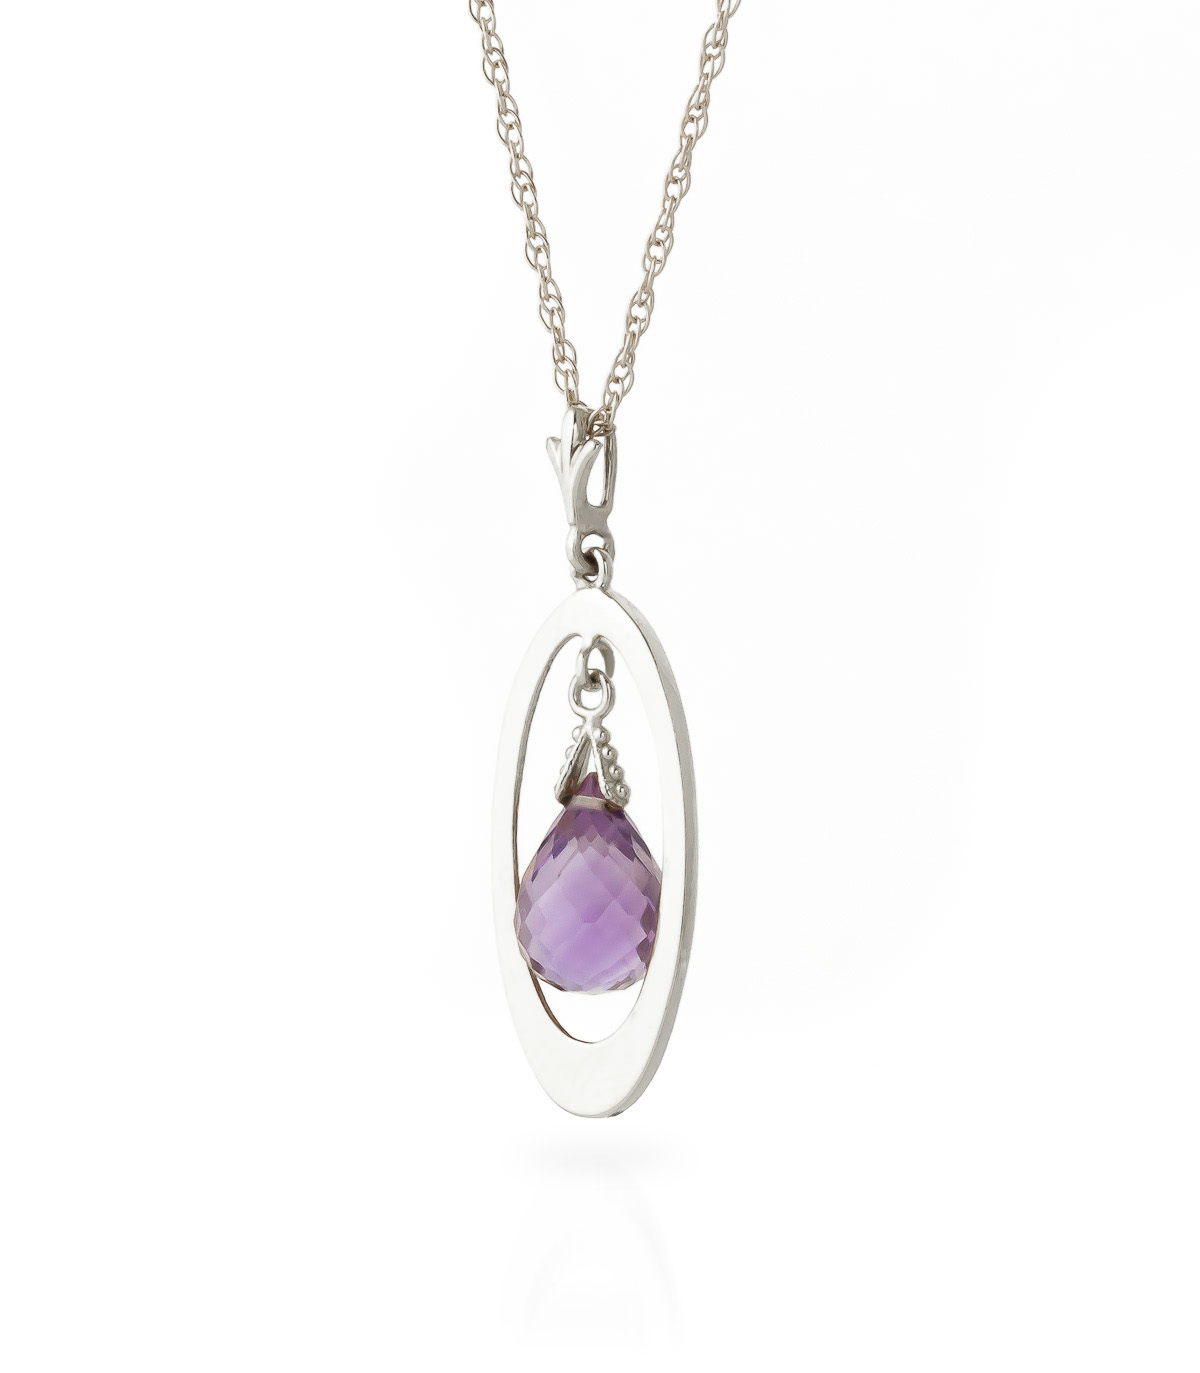 Amethyst Orb Pendant Necklace 0.7 ct in 9ct White Gold